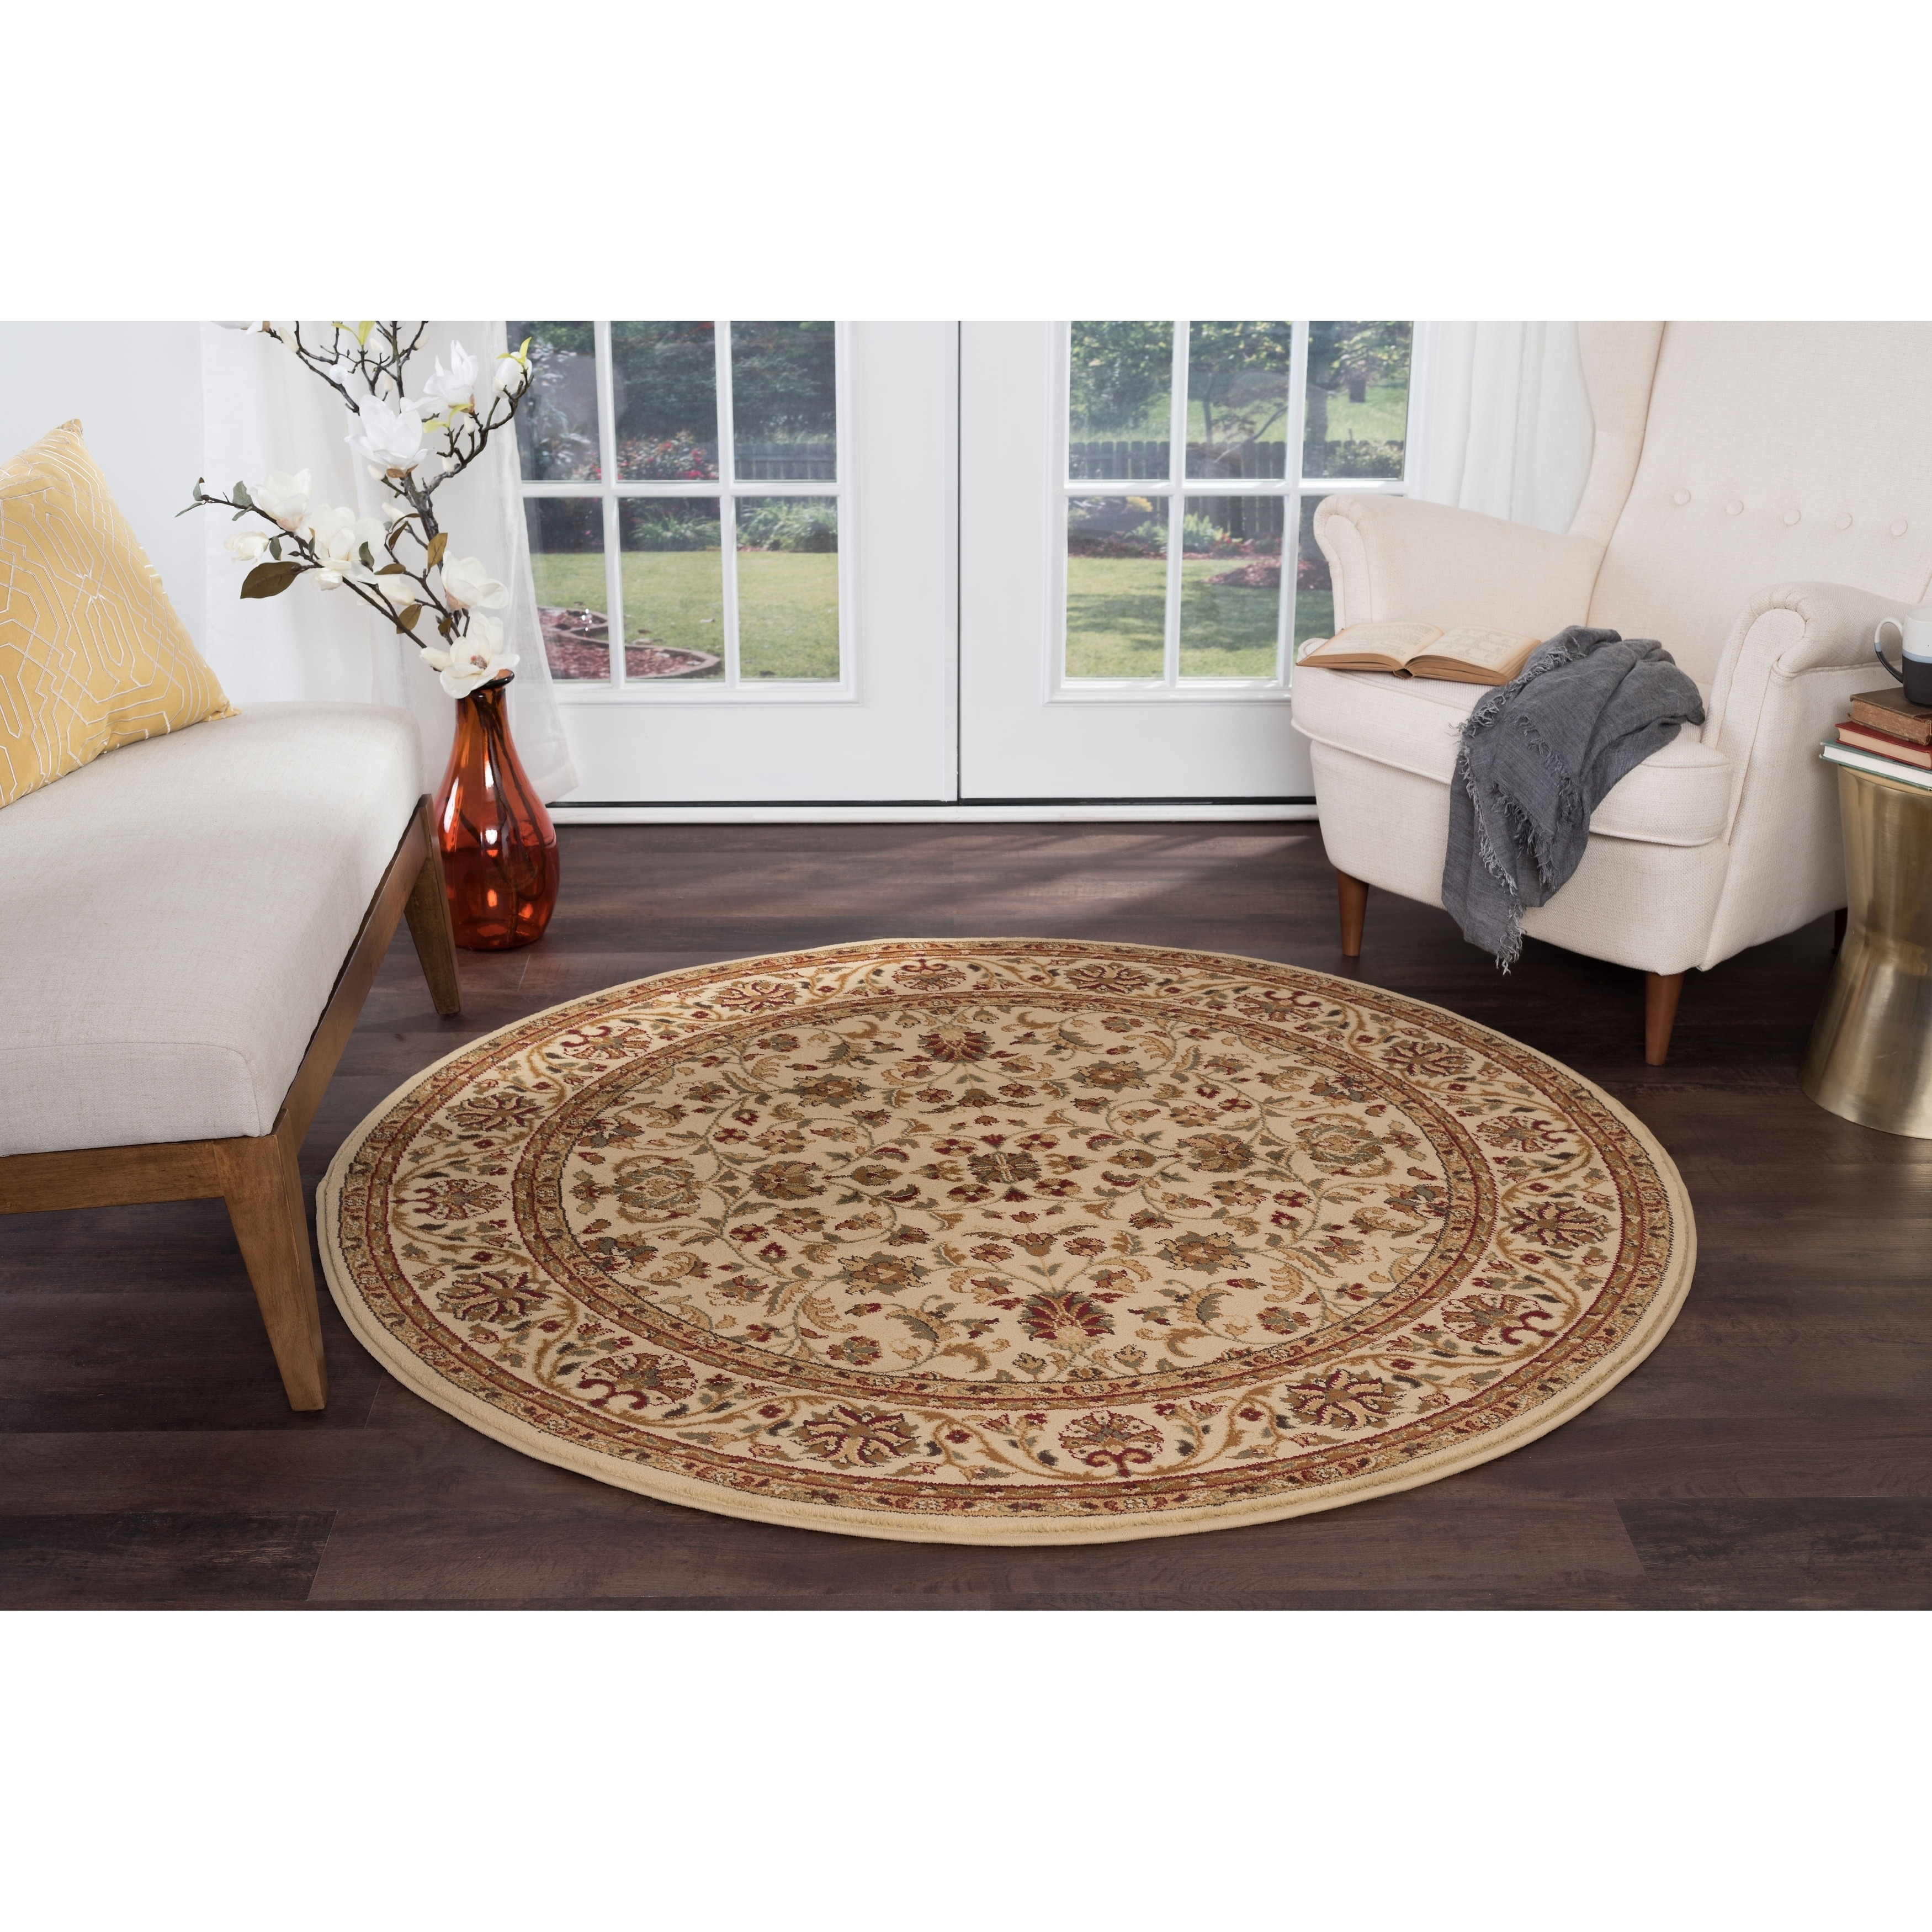 Alise Soho Transitional Area Rug (7'10 Round) (Beige/Off-...